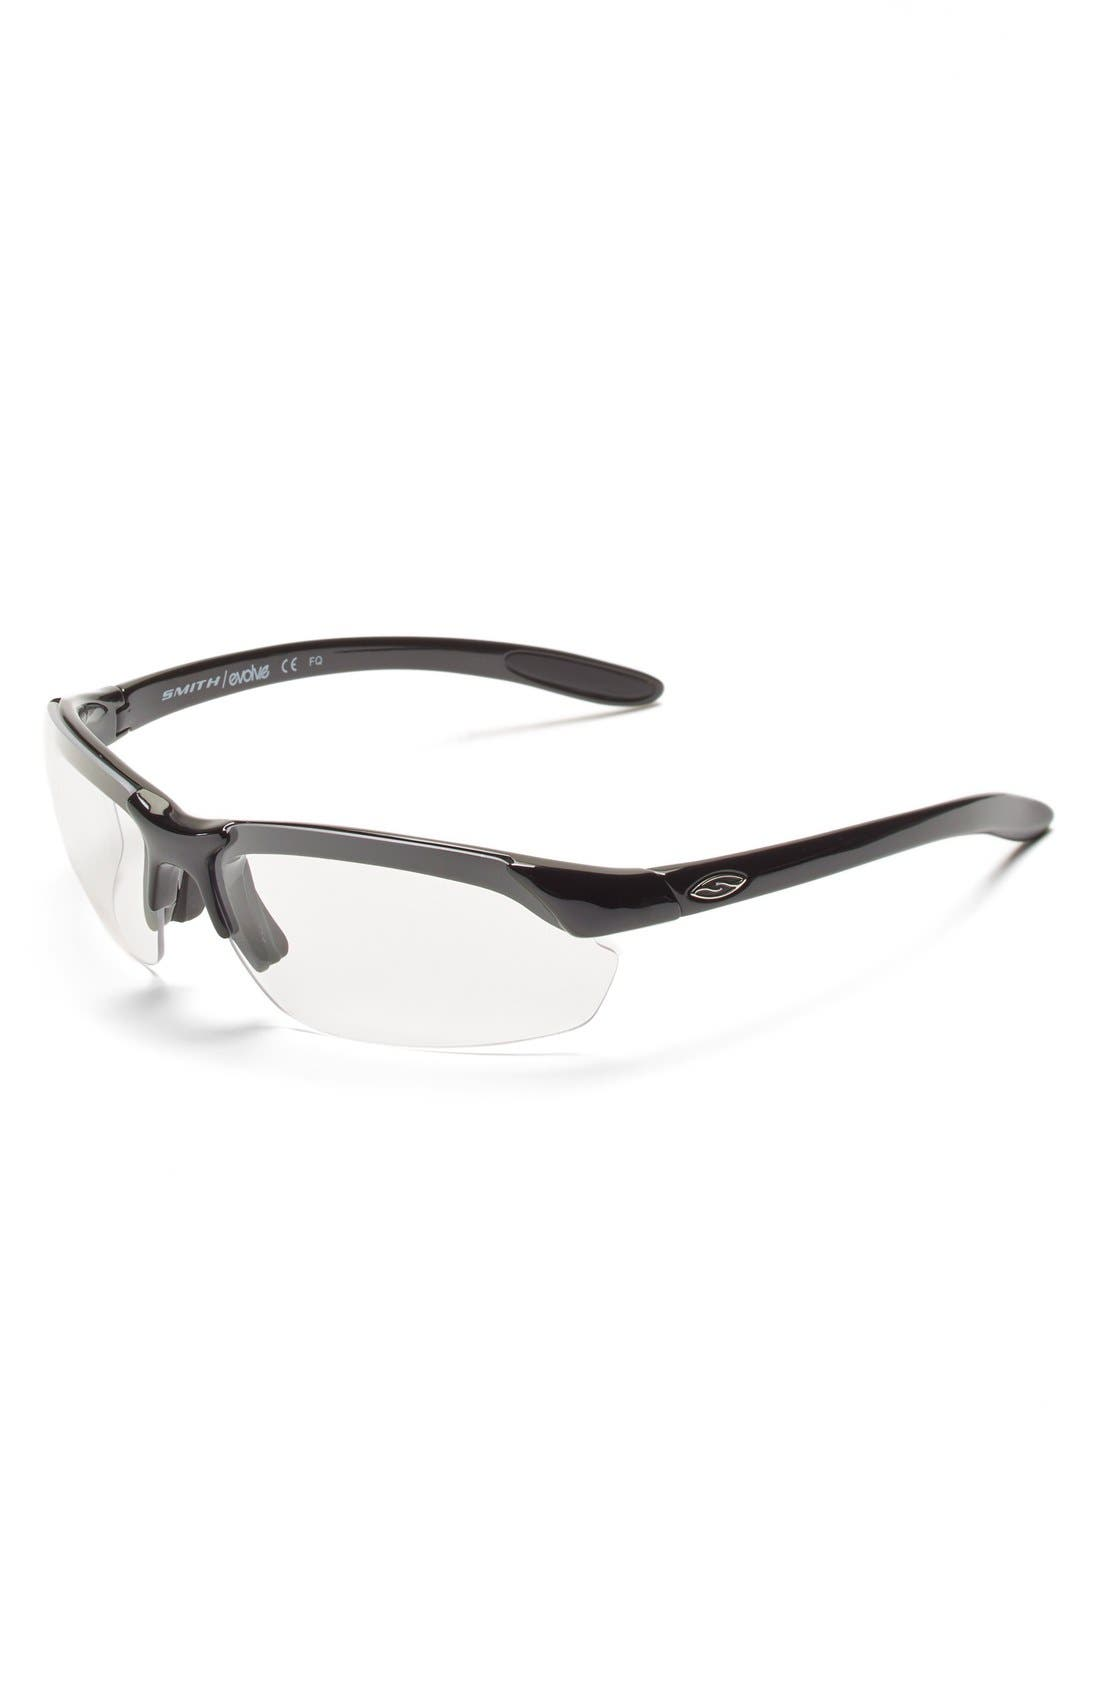 'Parallel Max' 65mm Polarized Sunglasses,                             Alternate thumbnail 7, color,                             Black/ Polar Grey/ Clear